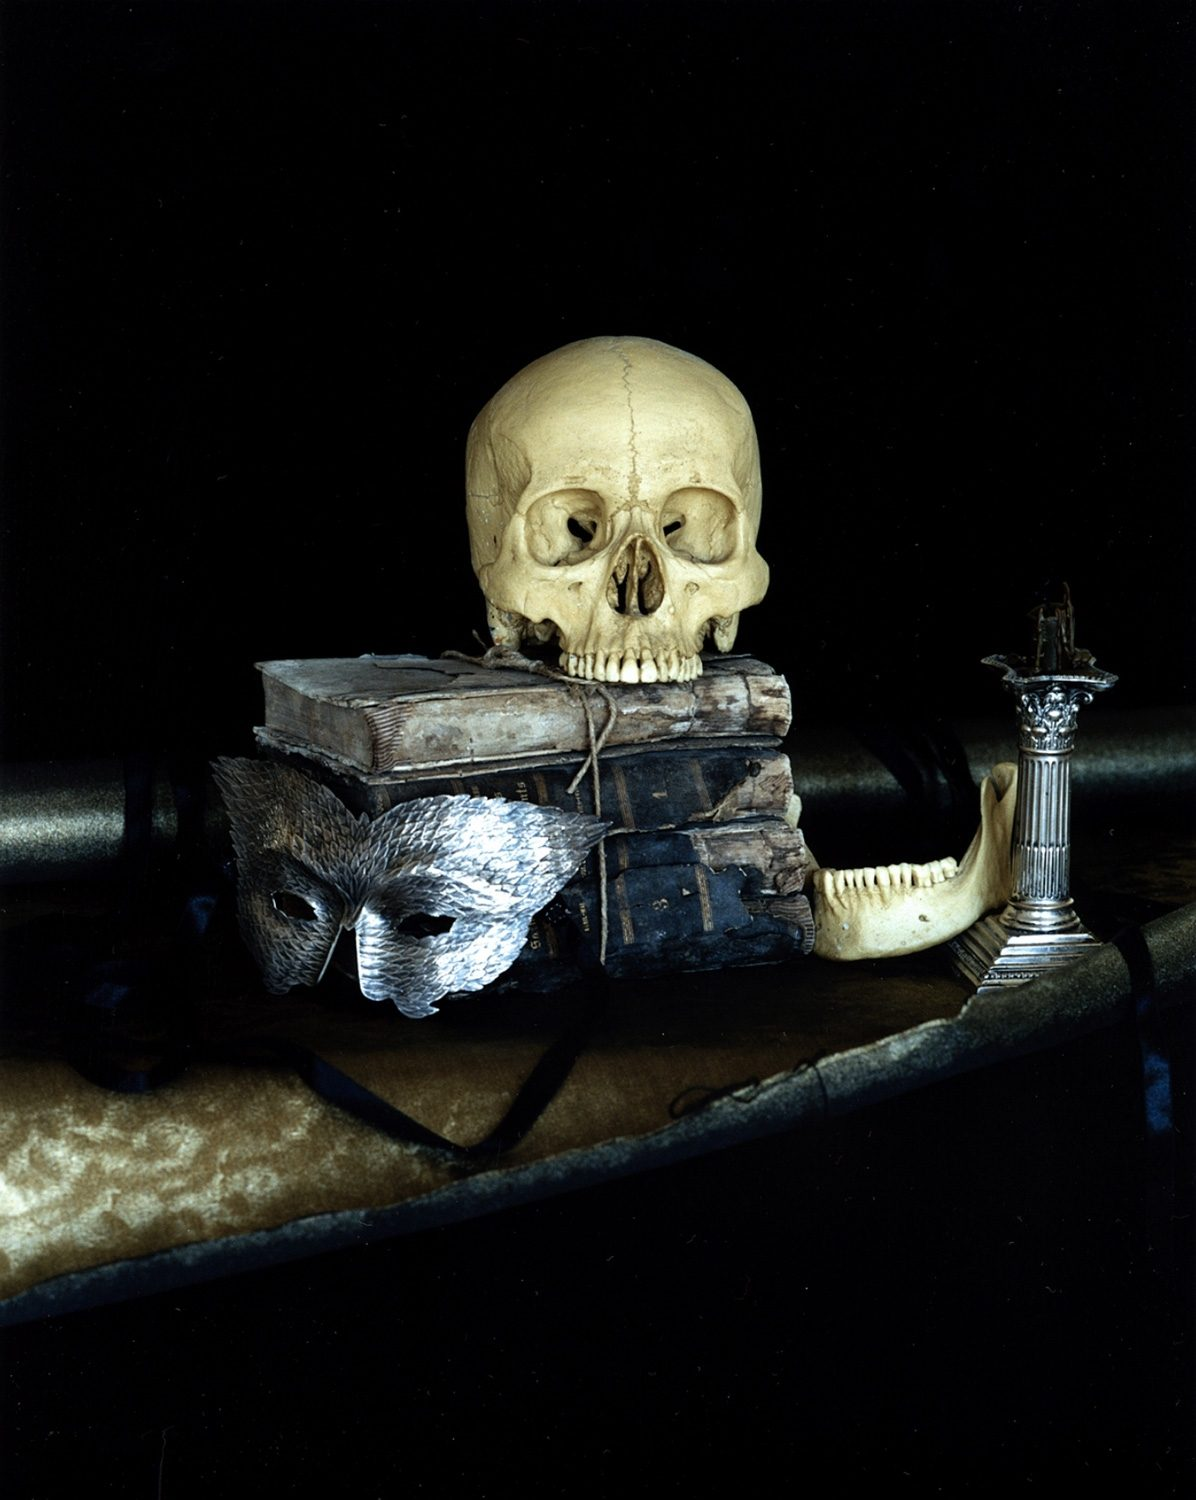 Still life with a silver mask